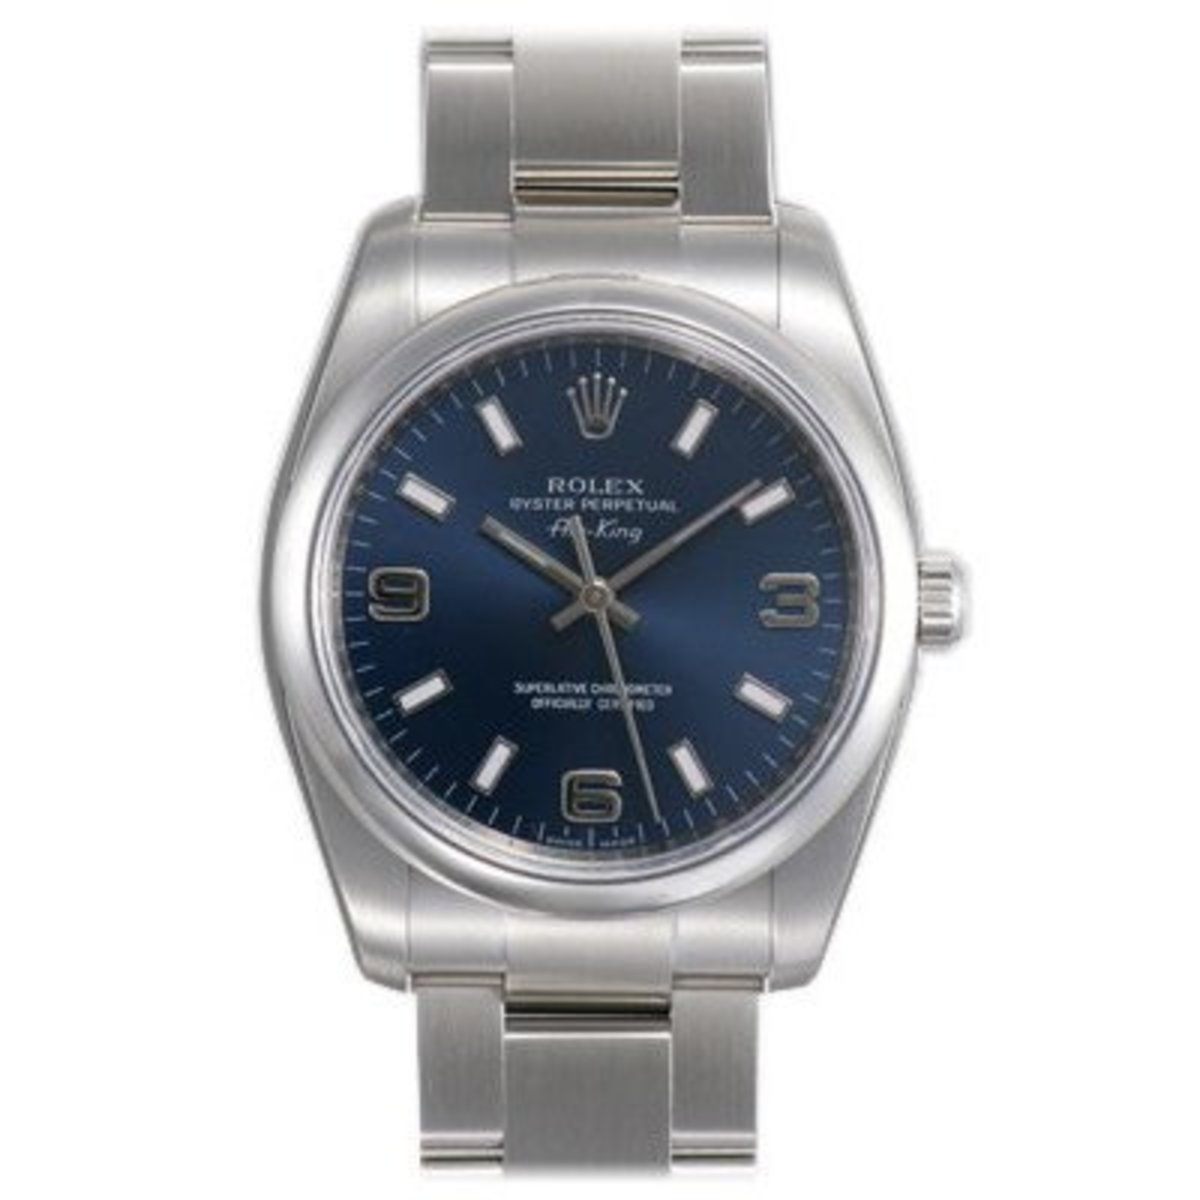 Buy Men's Rolex Watches at a Discount